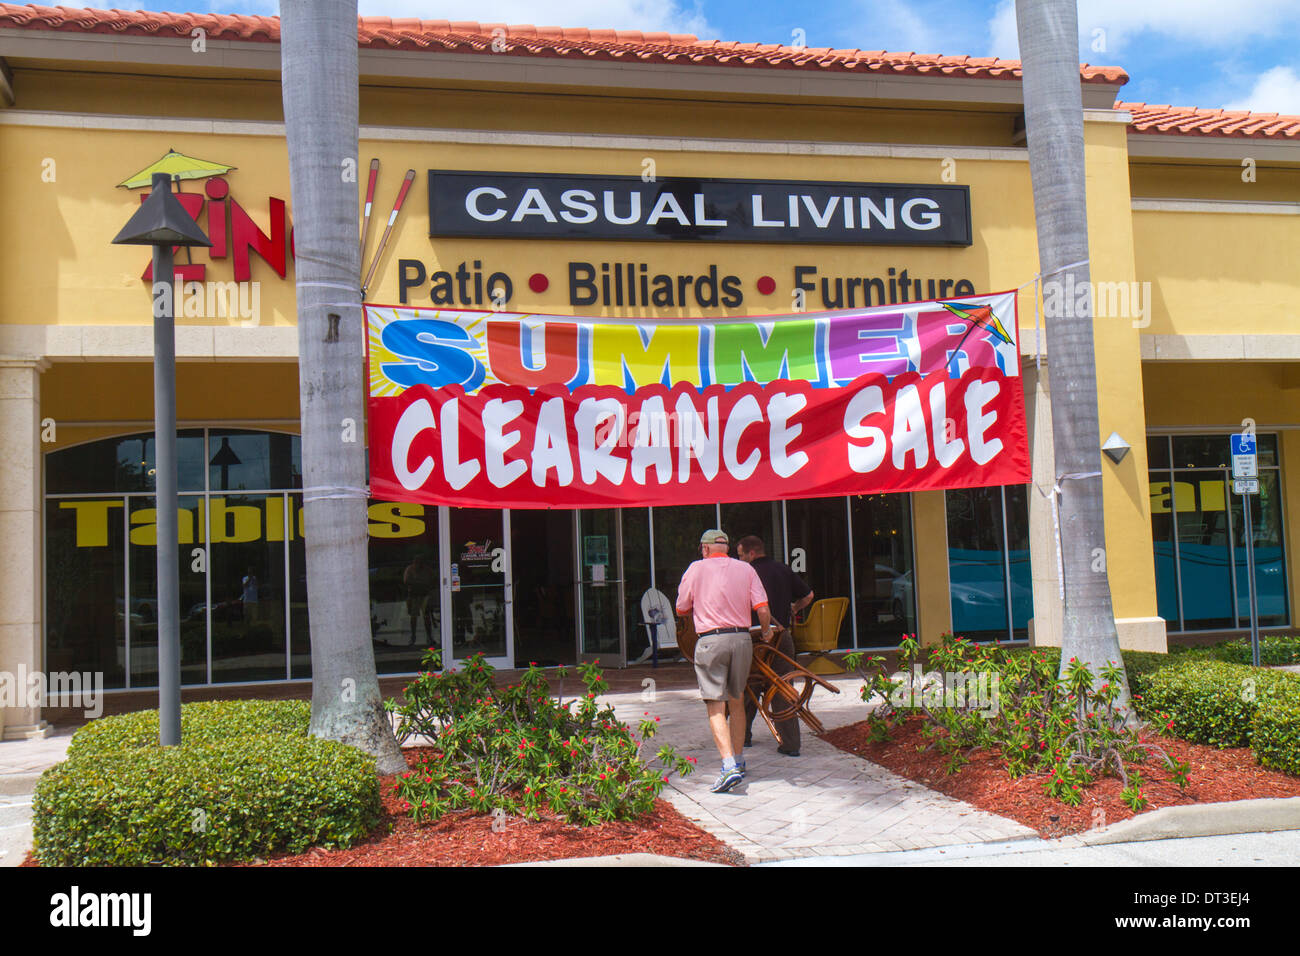 Naples Florida Zing Casual Living Shopping Furniture Store Front Entrance  Banner Summer Clearance Sale Promotion